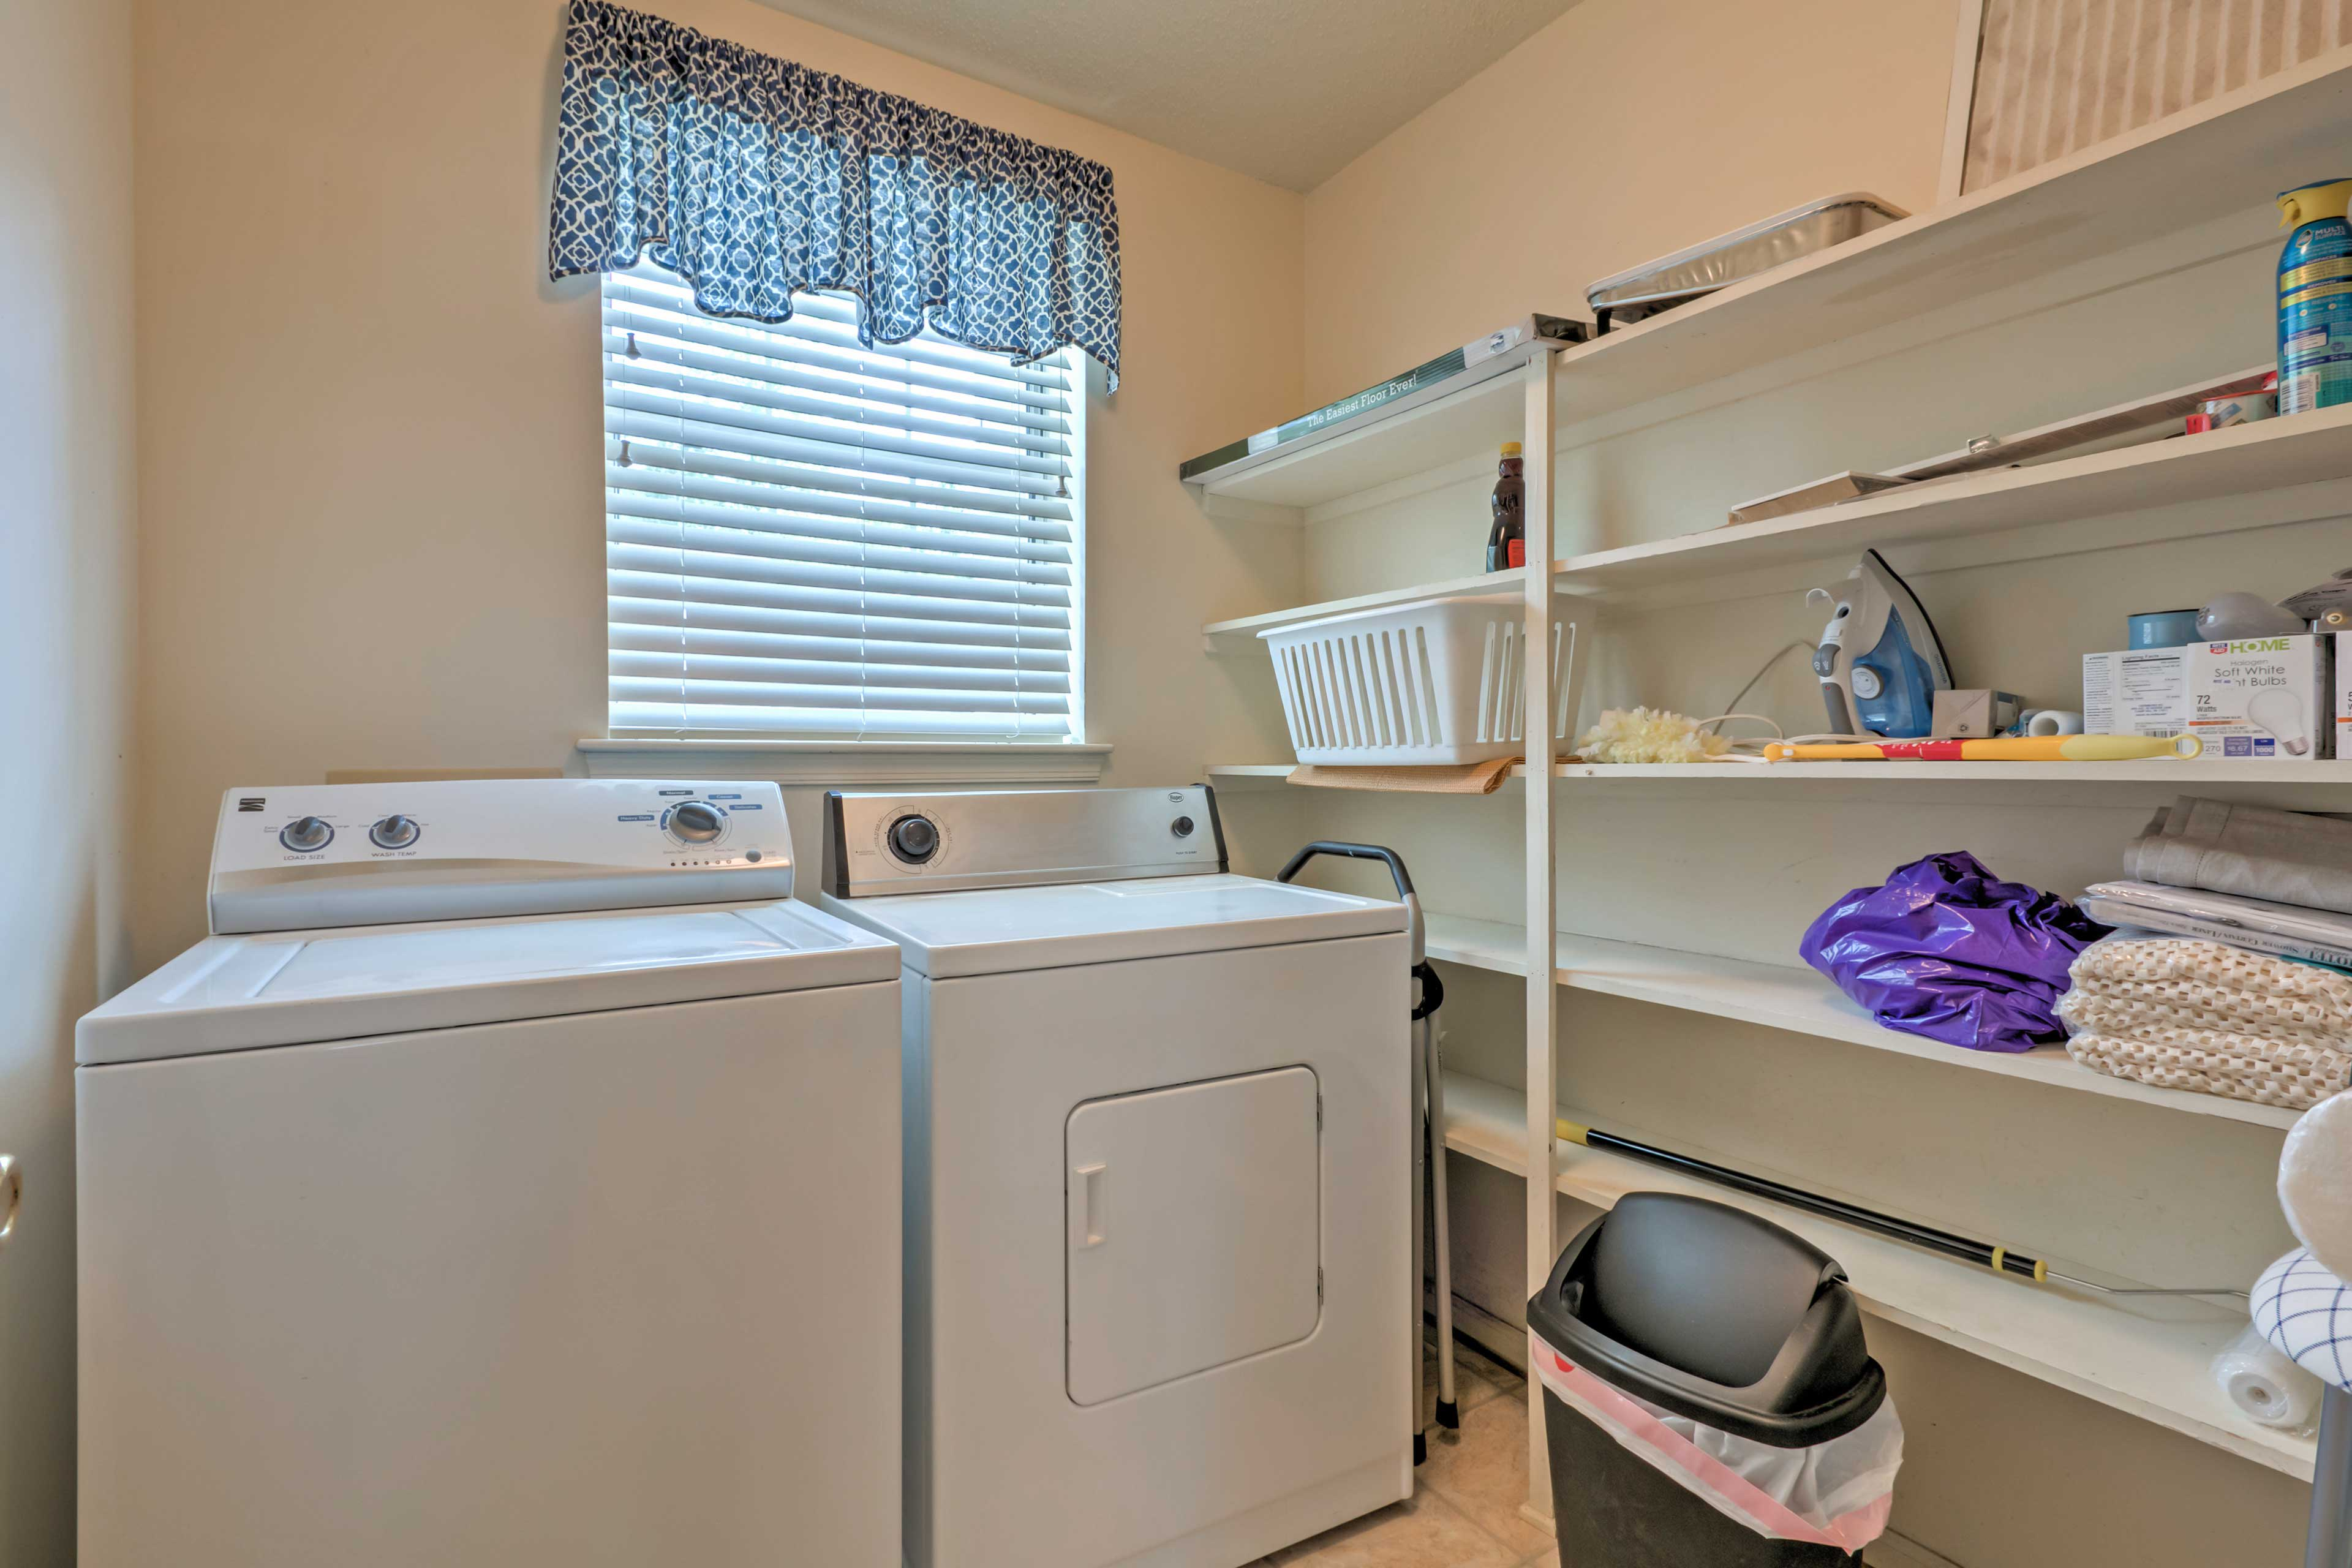 In-unit laundry machines are provided for your convenience.